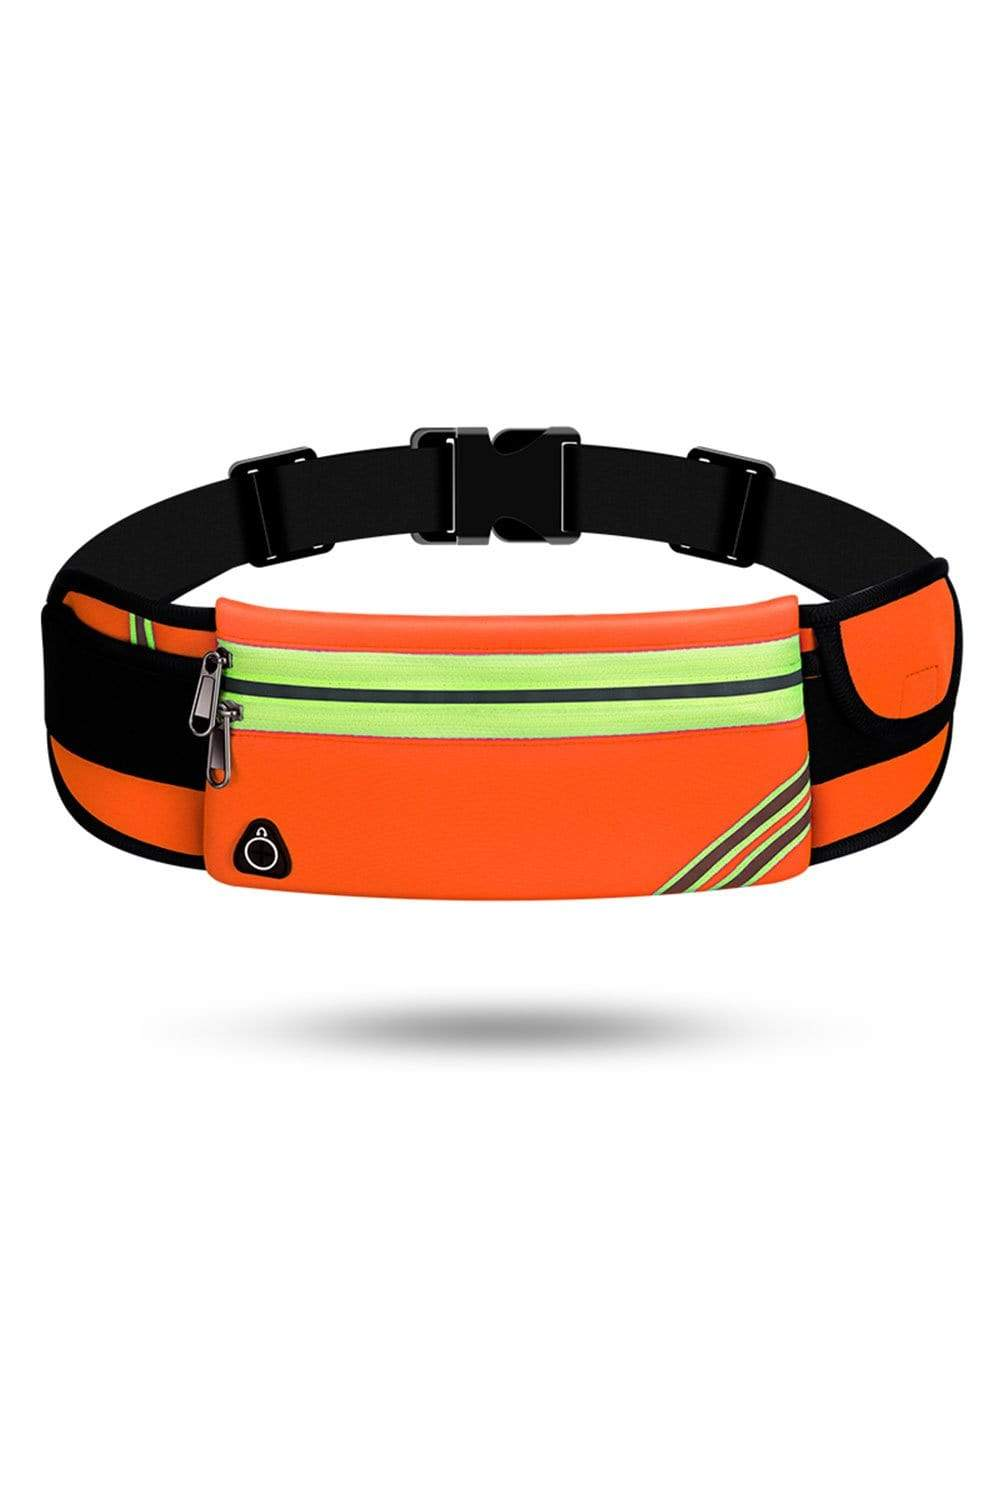 Running Waist Pack Bag, Workout Fanny Pack, Bounce Free Jogging Pocket Belt, Travelling Money Cell Phone Holder for Running Accessories Waist Bag Orange / Double Zippers MIER